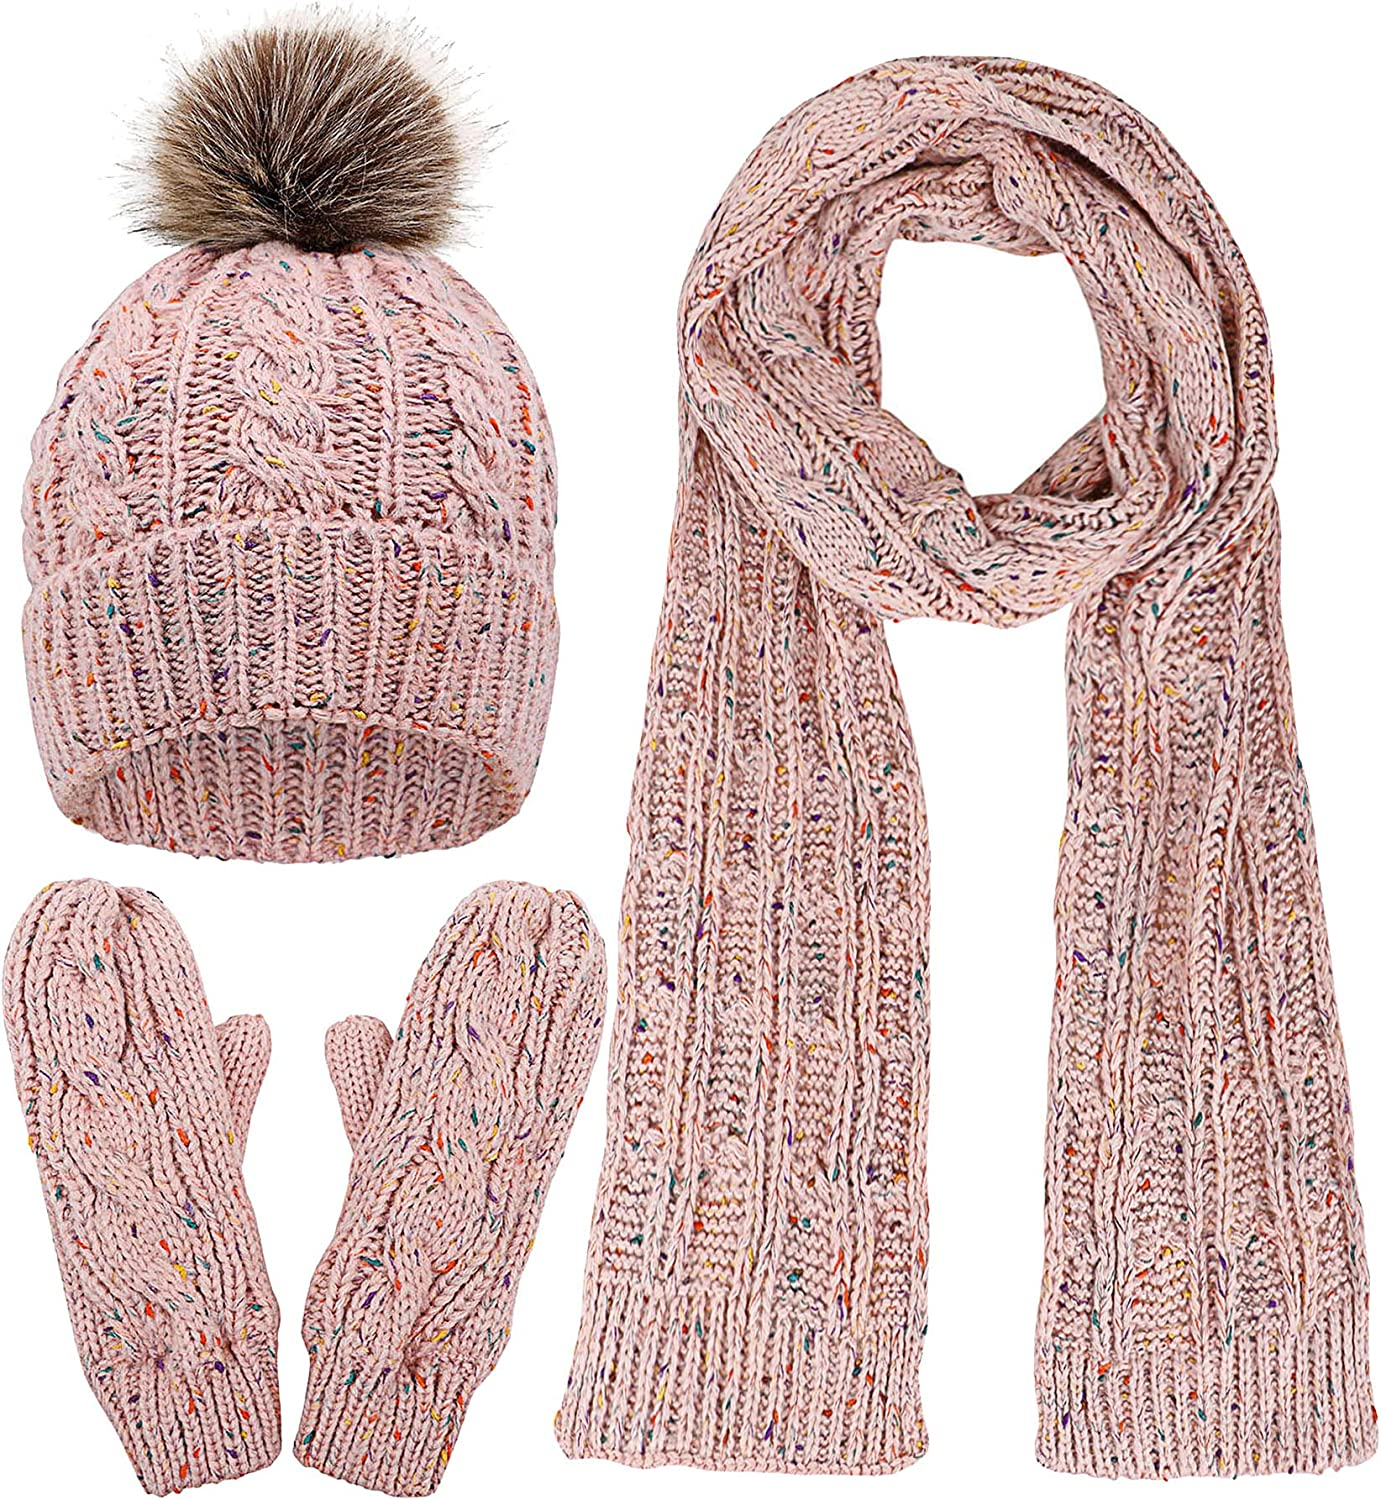 Ladies//Womens Embellished Cable Knit Winter Beanie Hat HA469